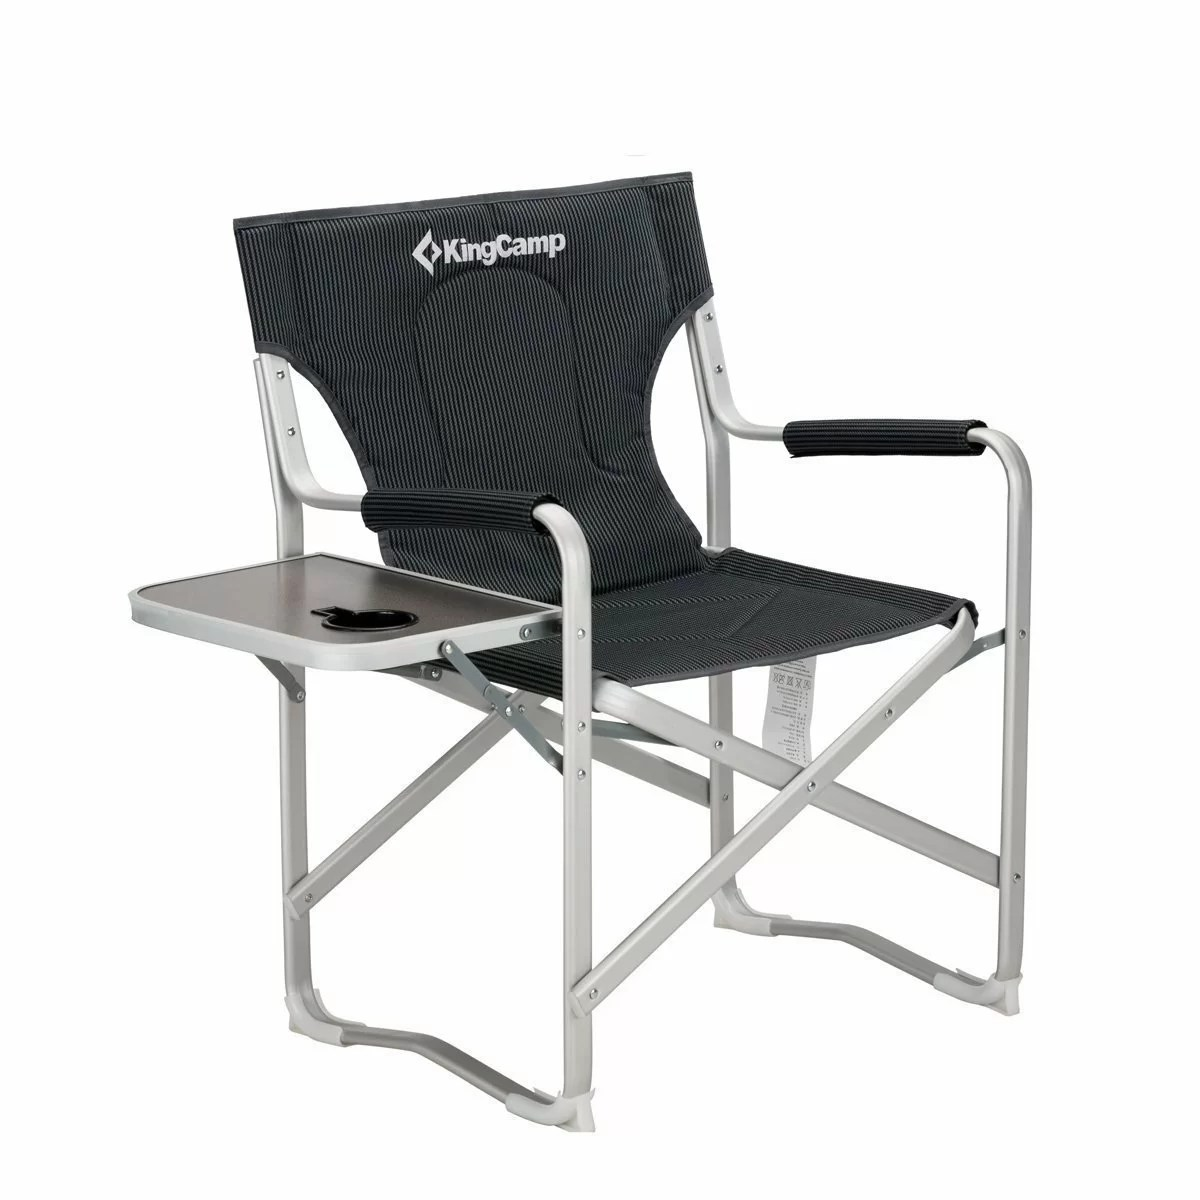 camping chairs with side table tommy bahama kingcamp portable heavy duty folding reclining chair armrest and cup holder wayfair